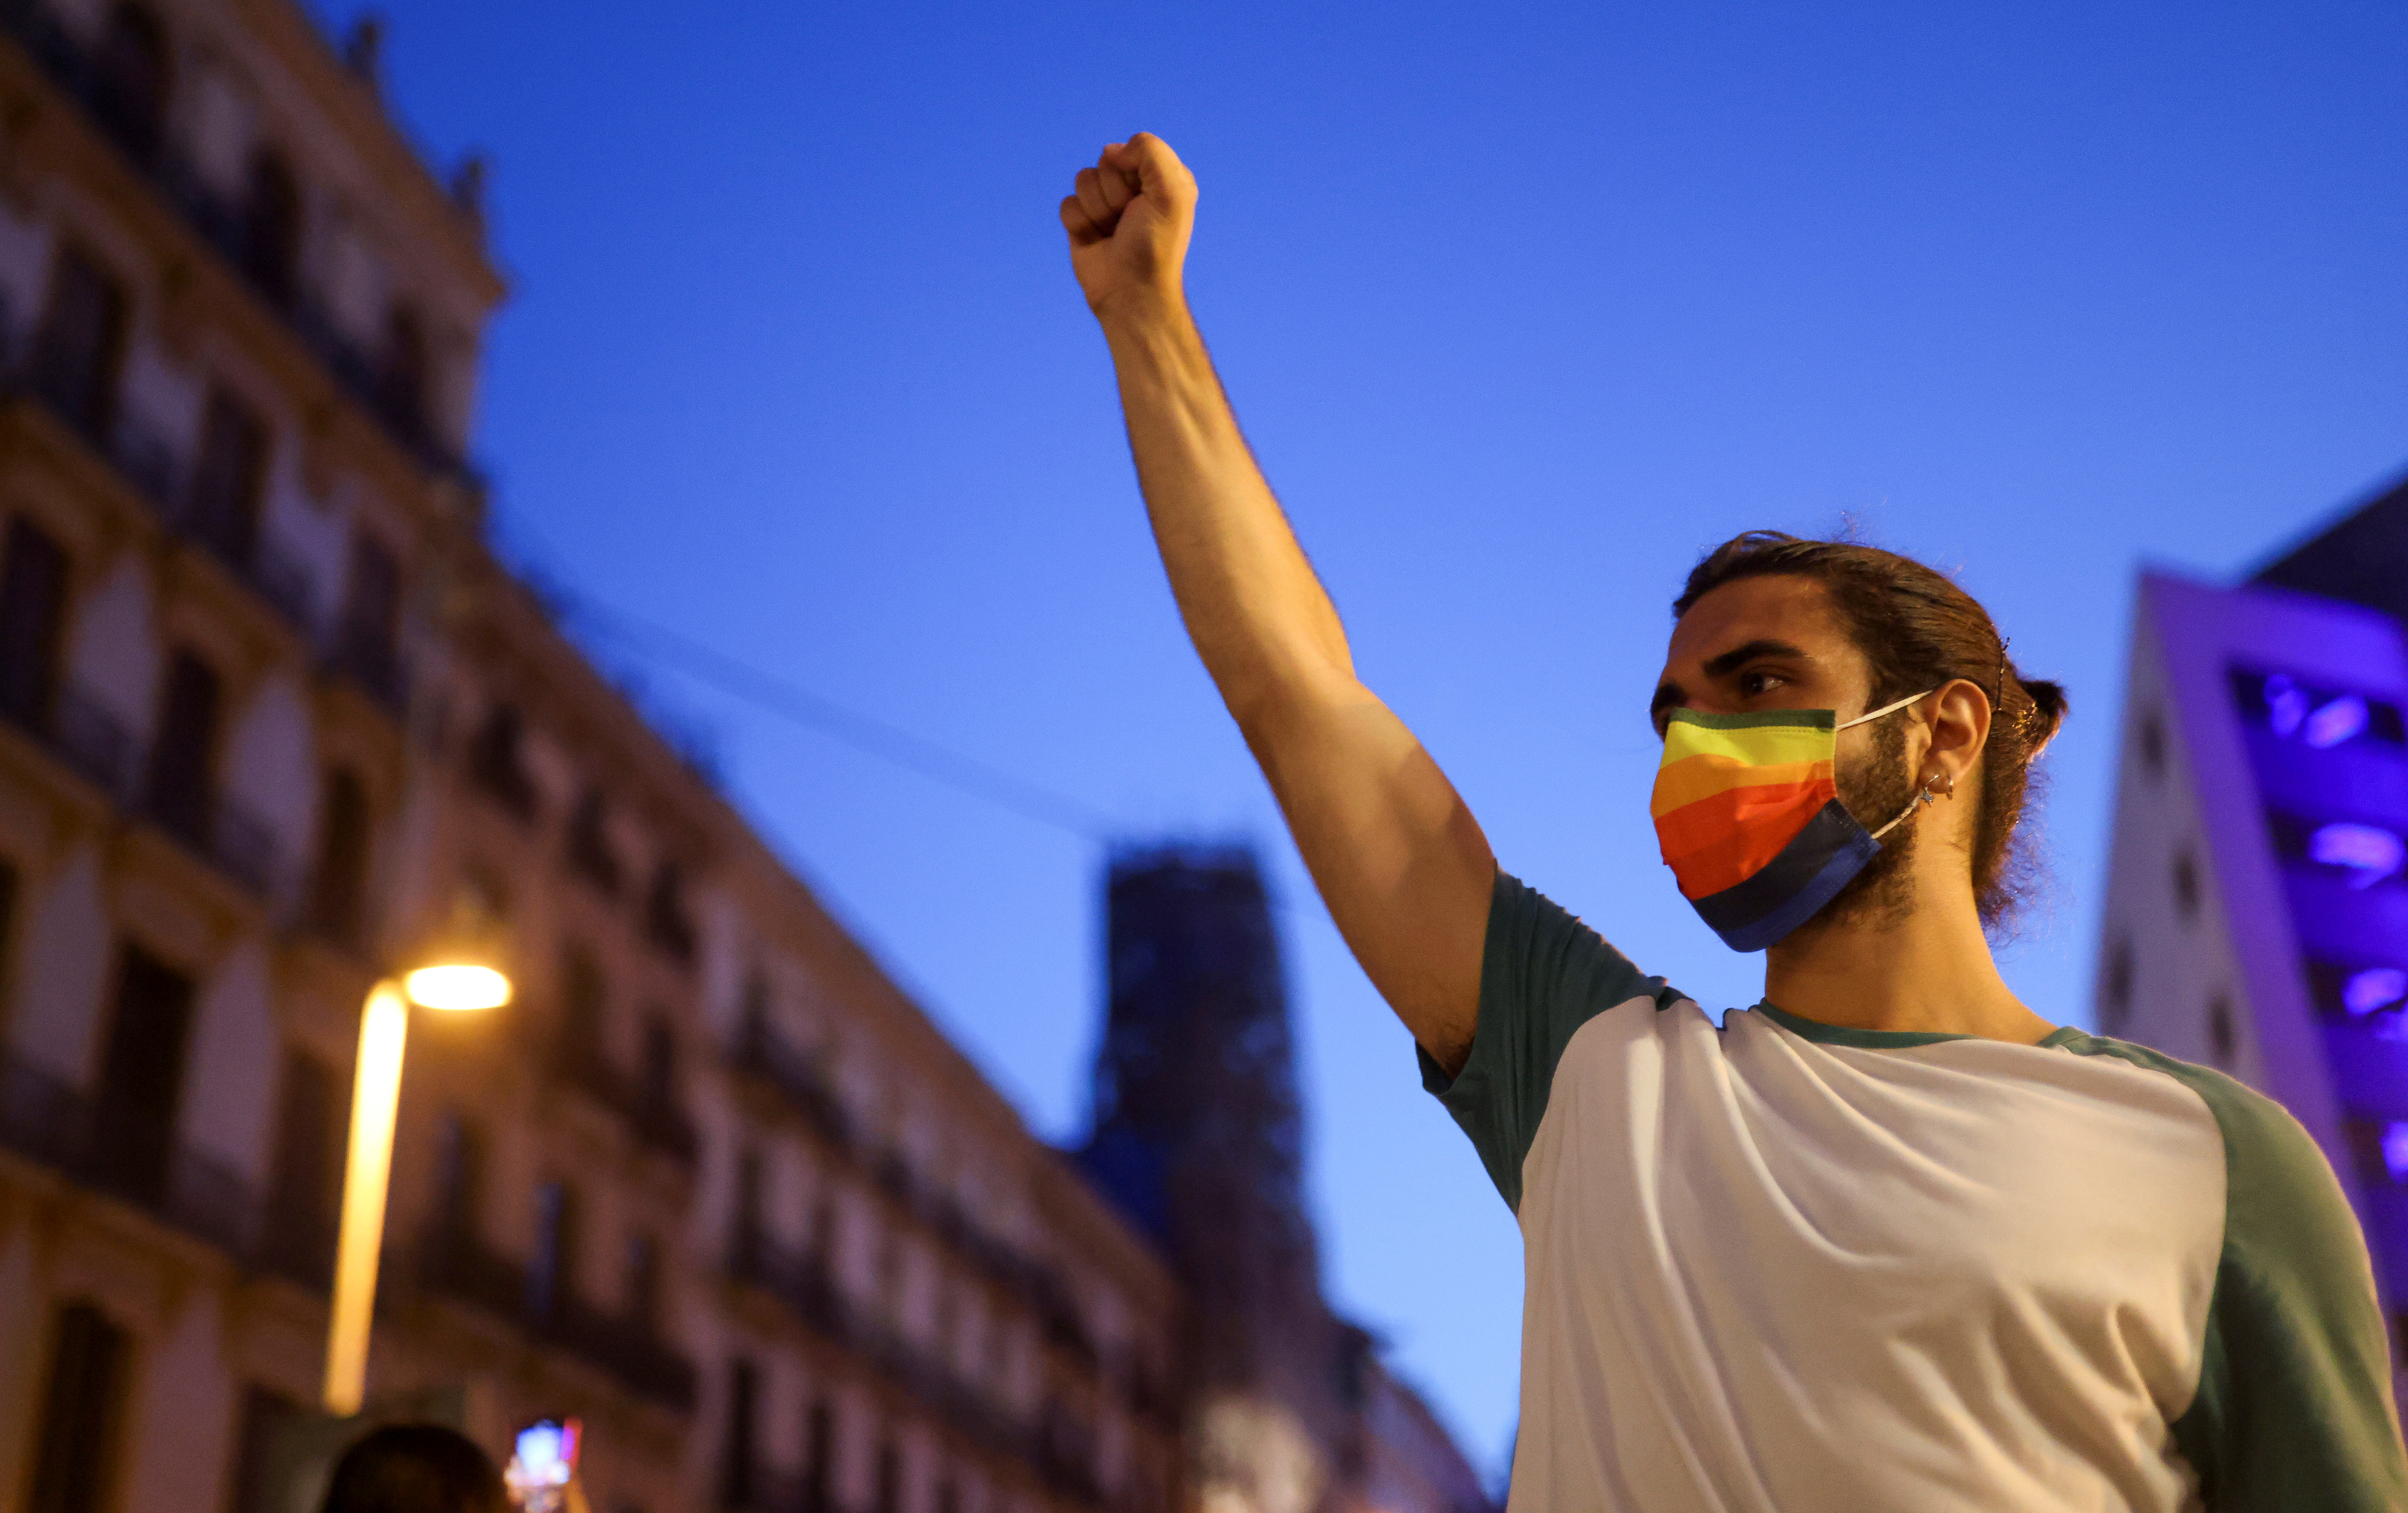 An LGBT+ activist gestures during a protest over the death of Samuel Luiz, who was attacked outside a club in A Coruna, in Barcelona, Spain July 5, 2021. REUTERS/Nacho Doce